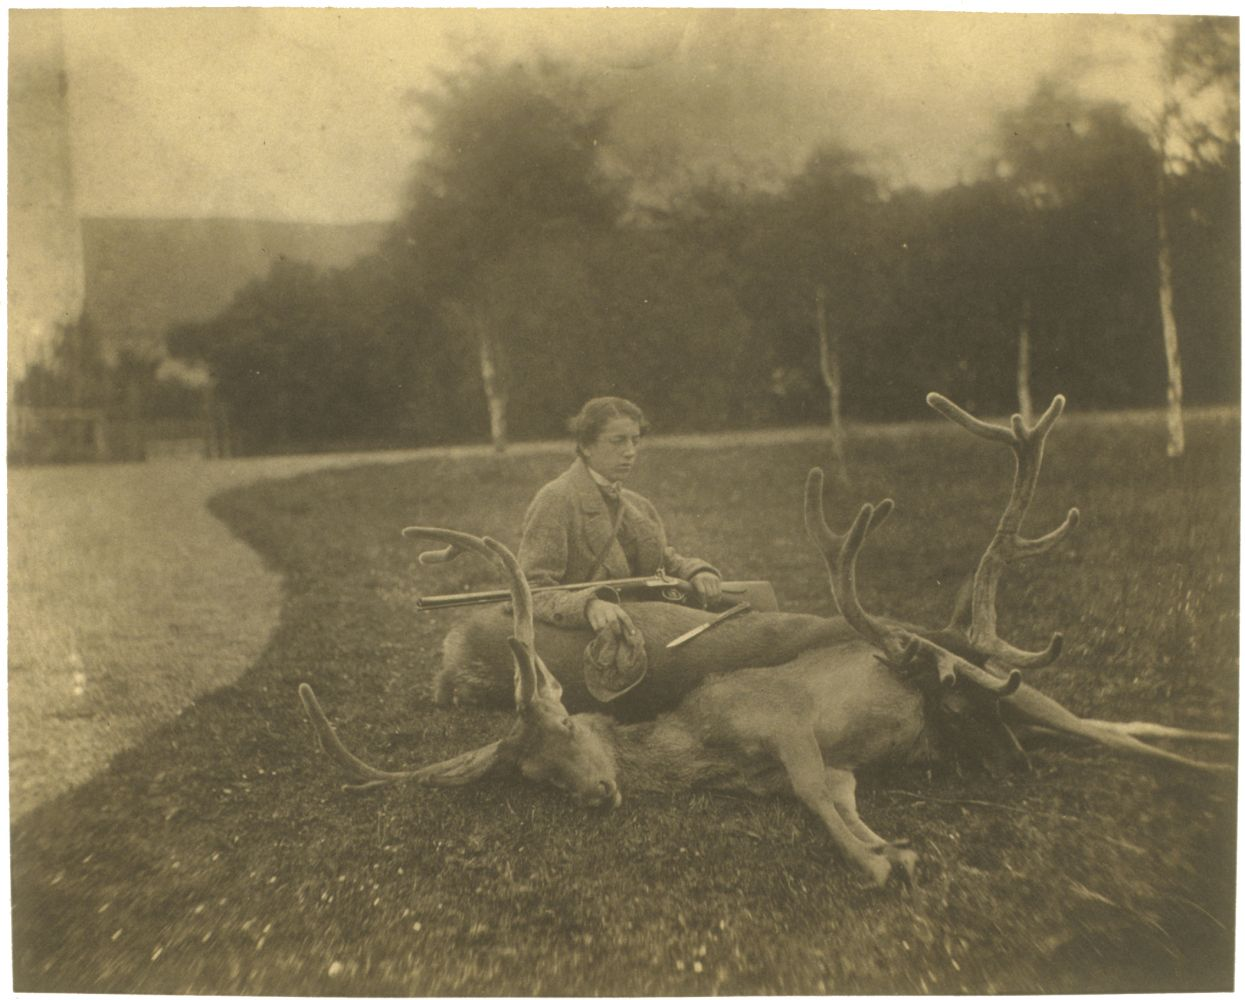 """Captain Horatio ROSS (Scottish, 1801-1886) """"Ned & his two Stags. Killed right & left in Corne Valigan..."""", July 1857 Salt print from a collodion negative 18.7 x 23.3 cm mounted on 26.0 x 33.5 cm album page Titled and dated in pencil on mount"""